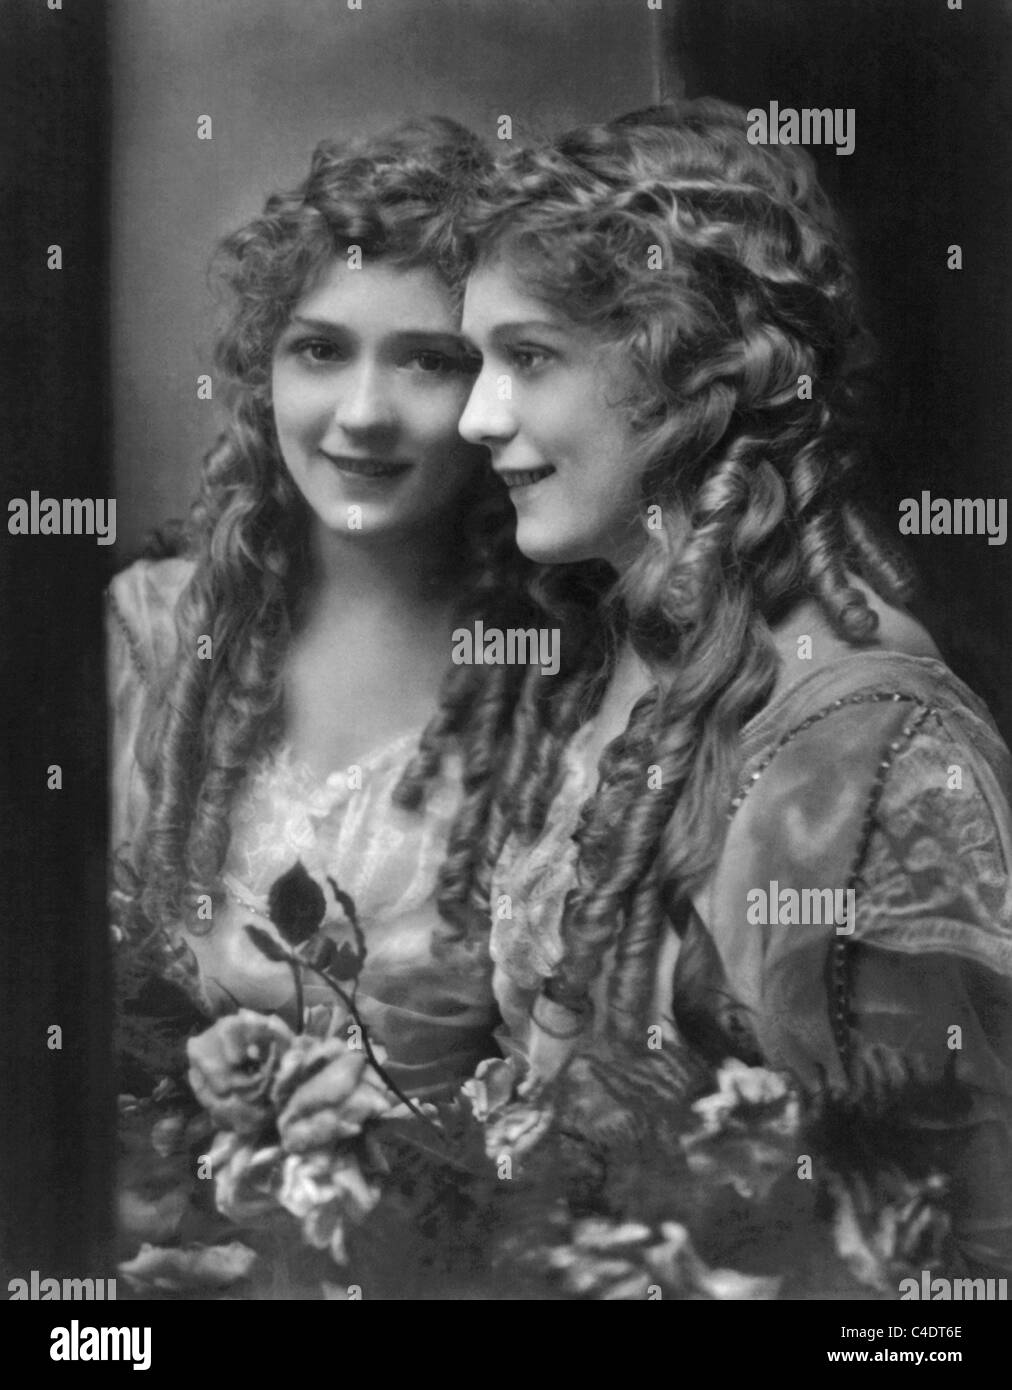 Vintage portrait photo circa 1914 of Canadian-born film actress Mary Pickford (1892 - 1979) standing next to a mirror. - Stock Image